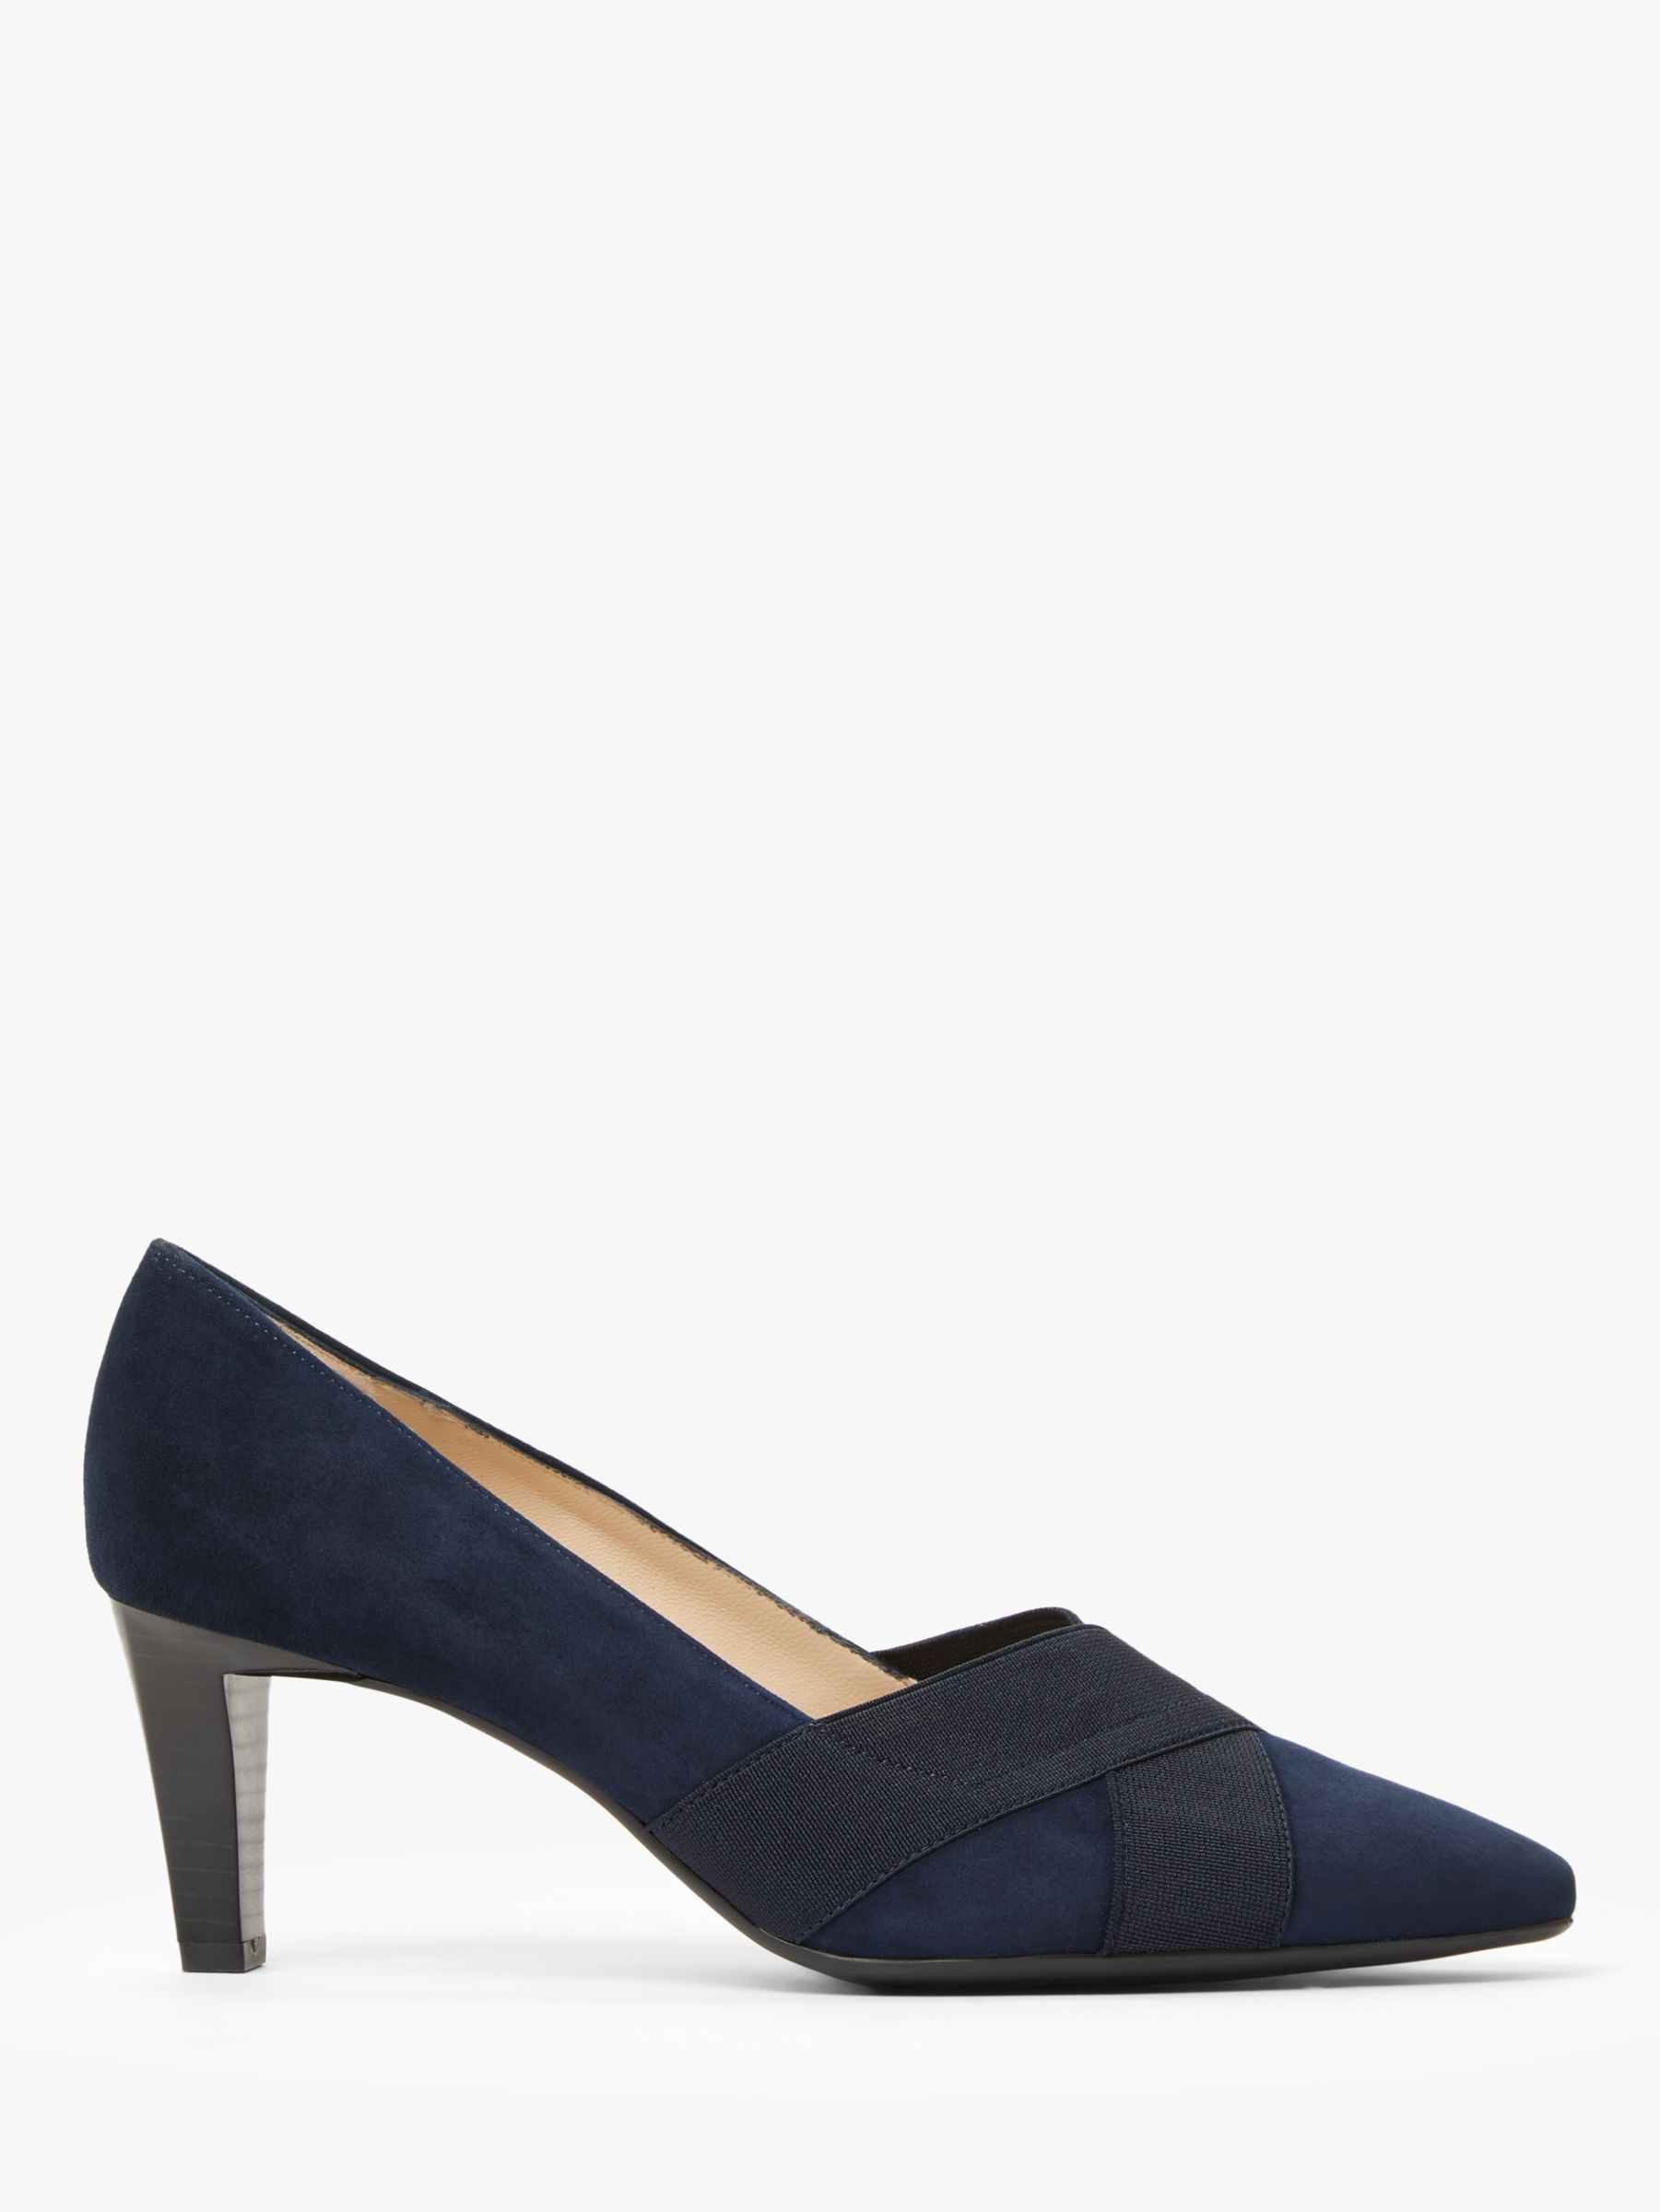 Peter Kaiser Peter Kaiser Malana Cross Strap Court Shoes, Navy